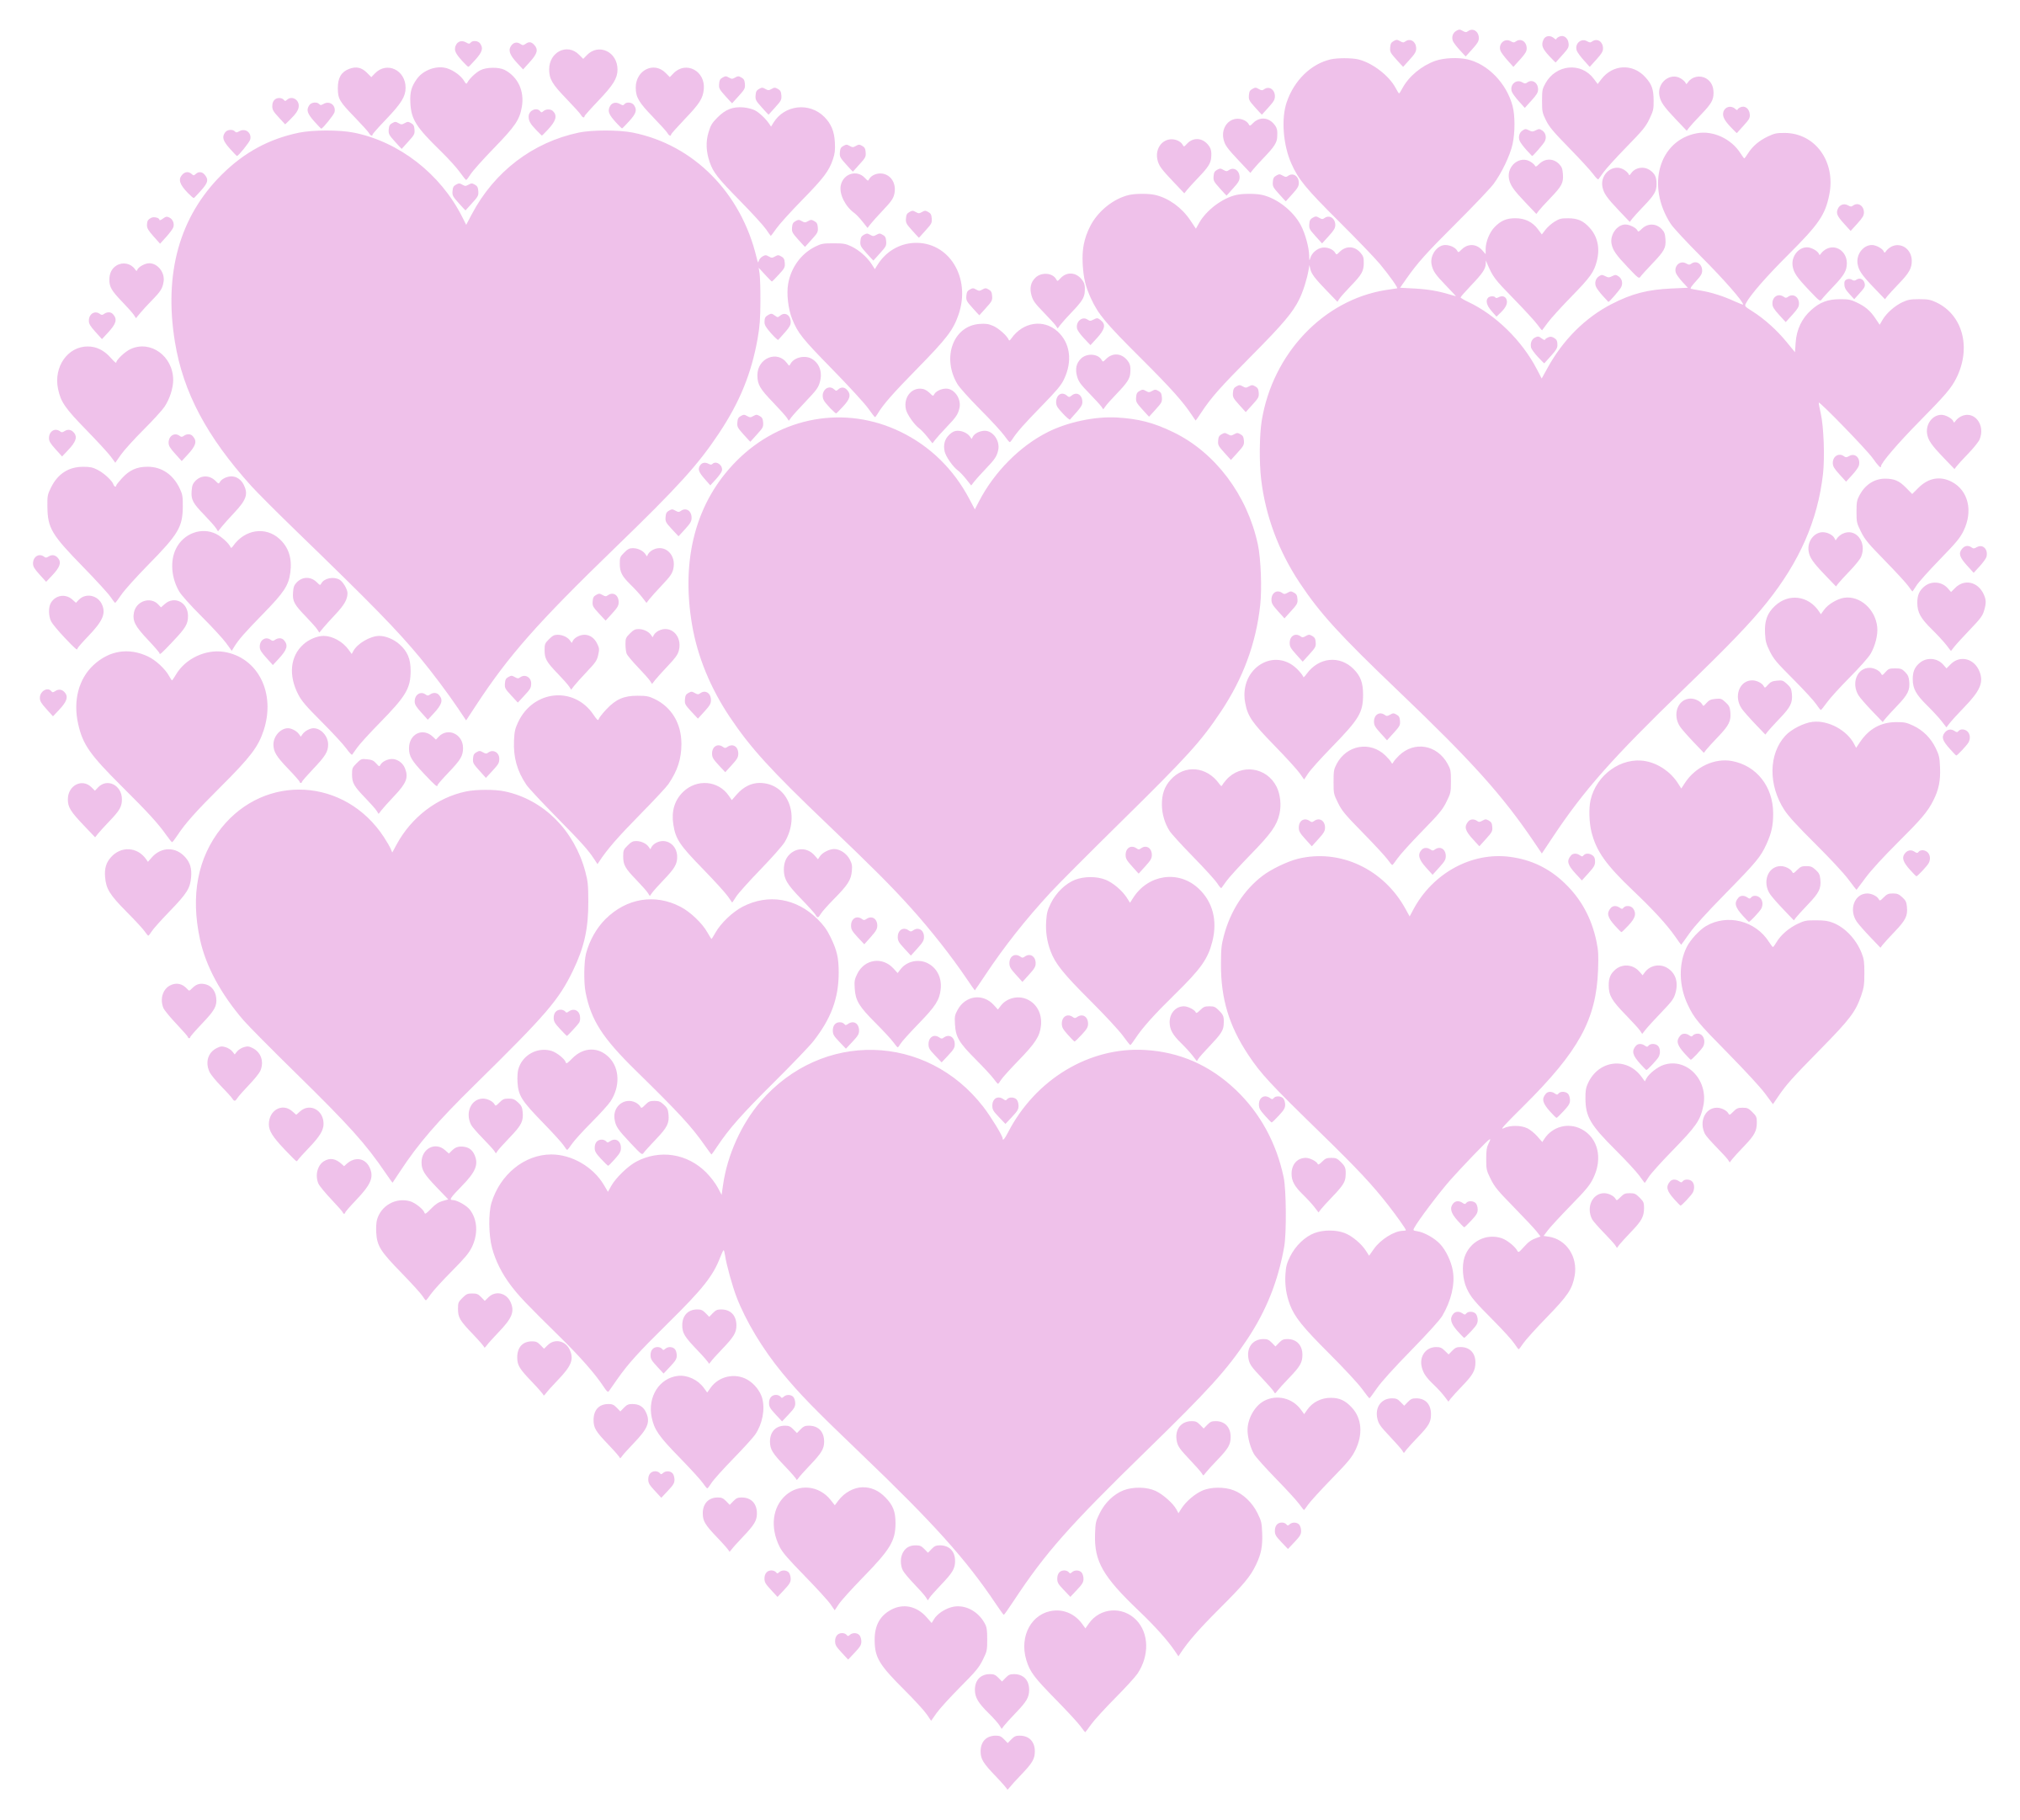 Clipart heart pink. Hearts in big image